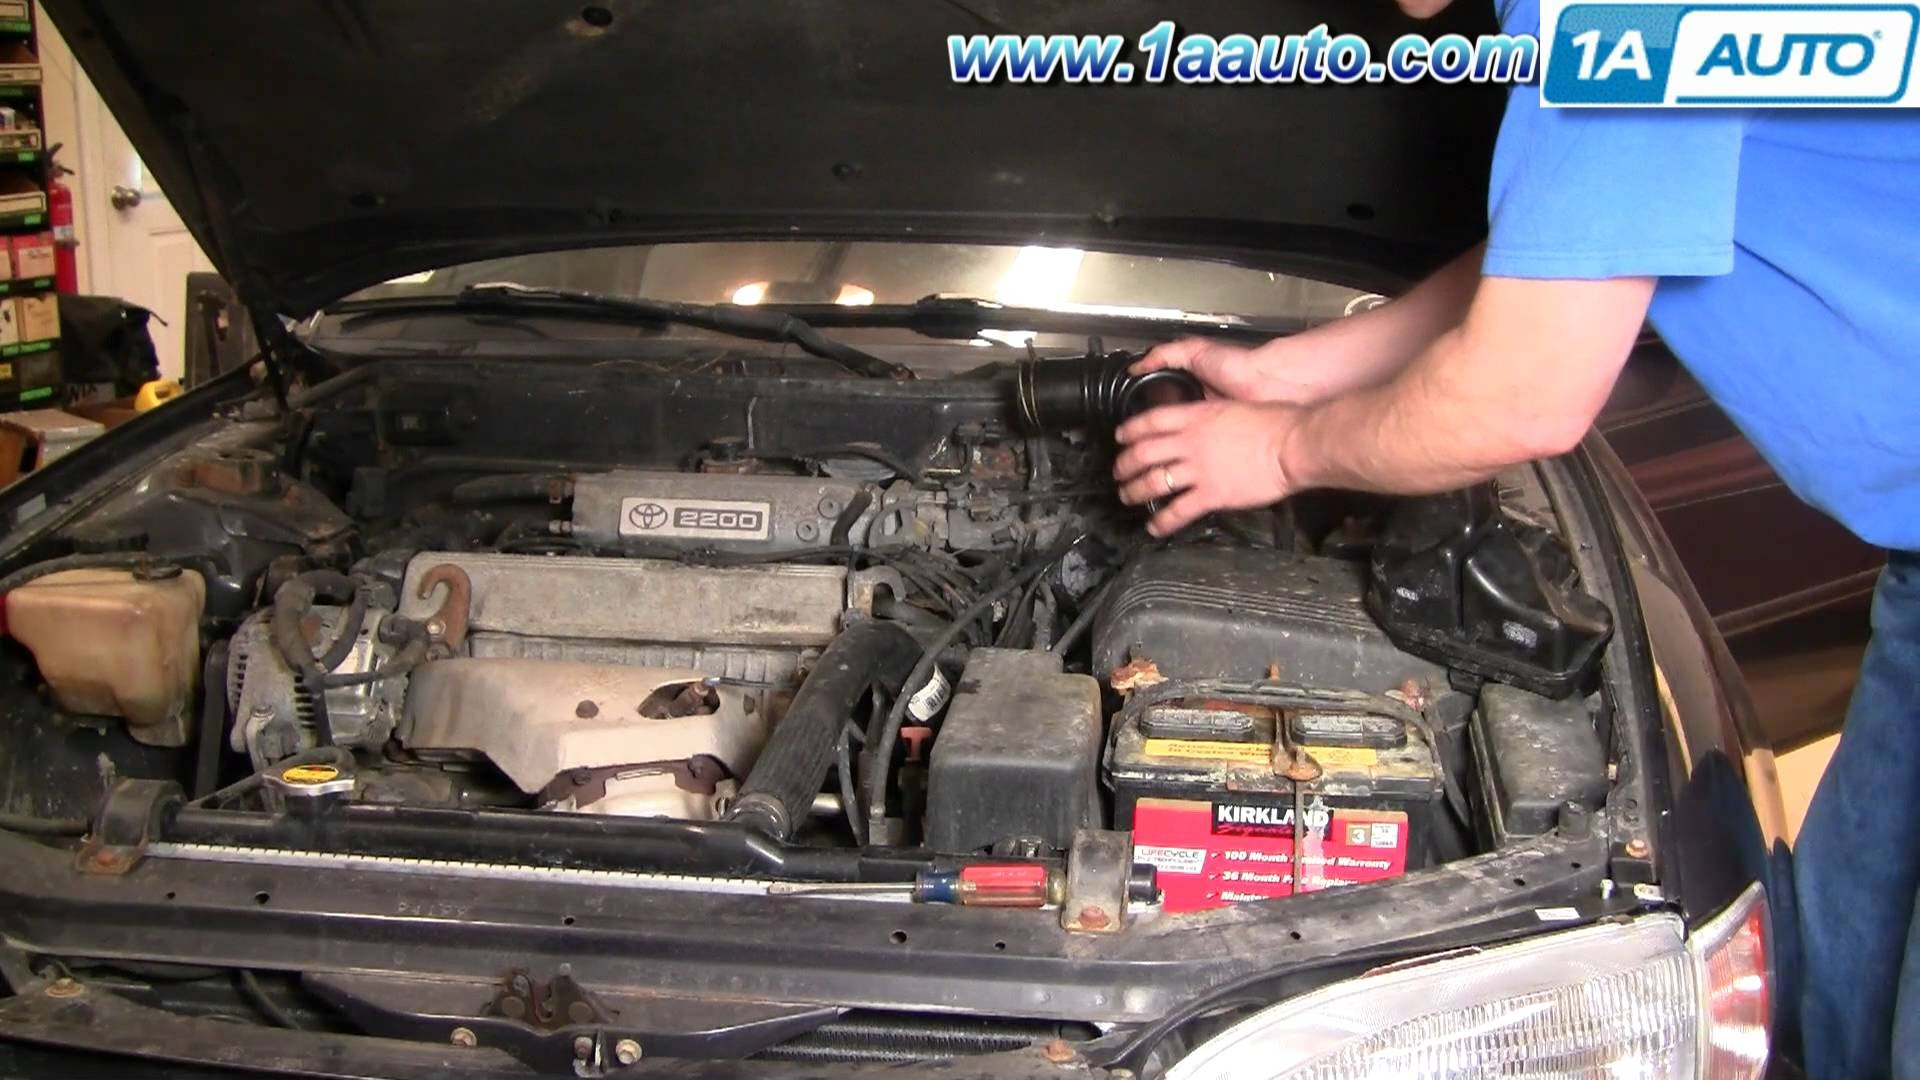 1998 toyota Rav4 Engine Diagram How to Install Replace Engine Air Intake Hose toyota Camry 2 2l 95 Of 1998 toyota Rav4 Engine Diagram